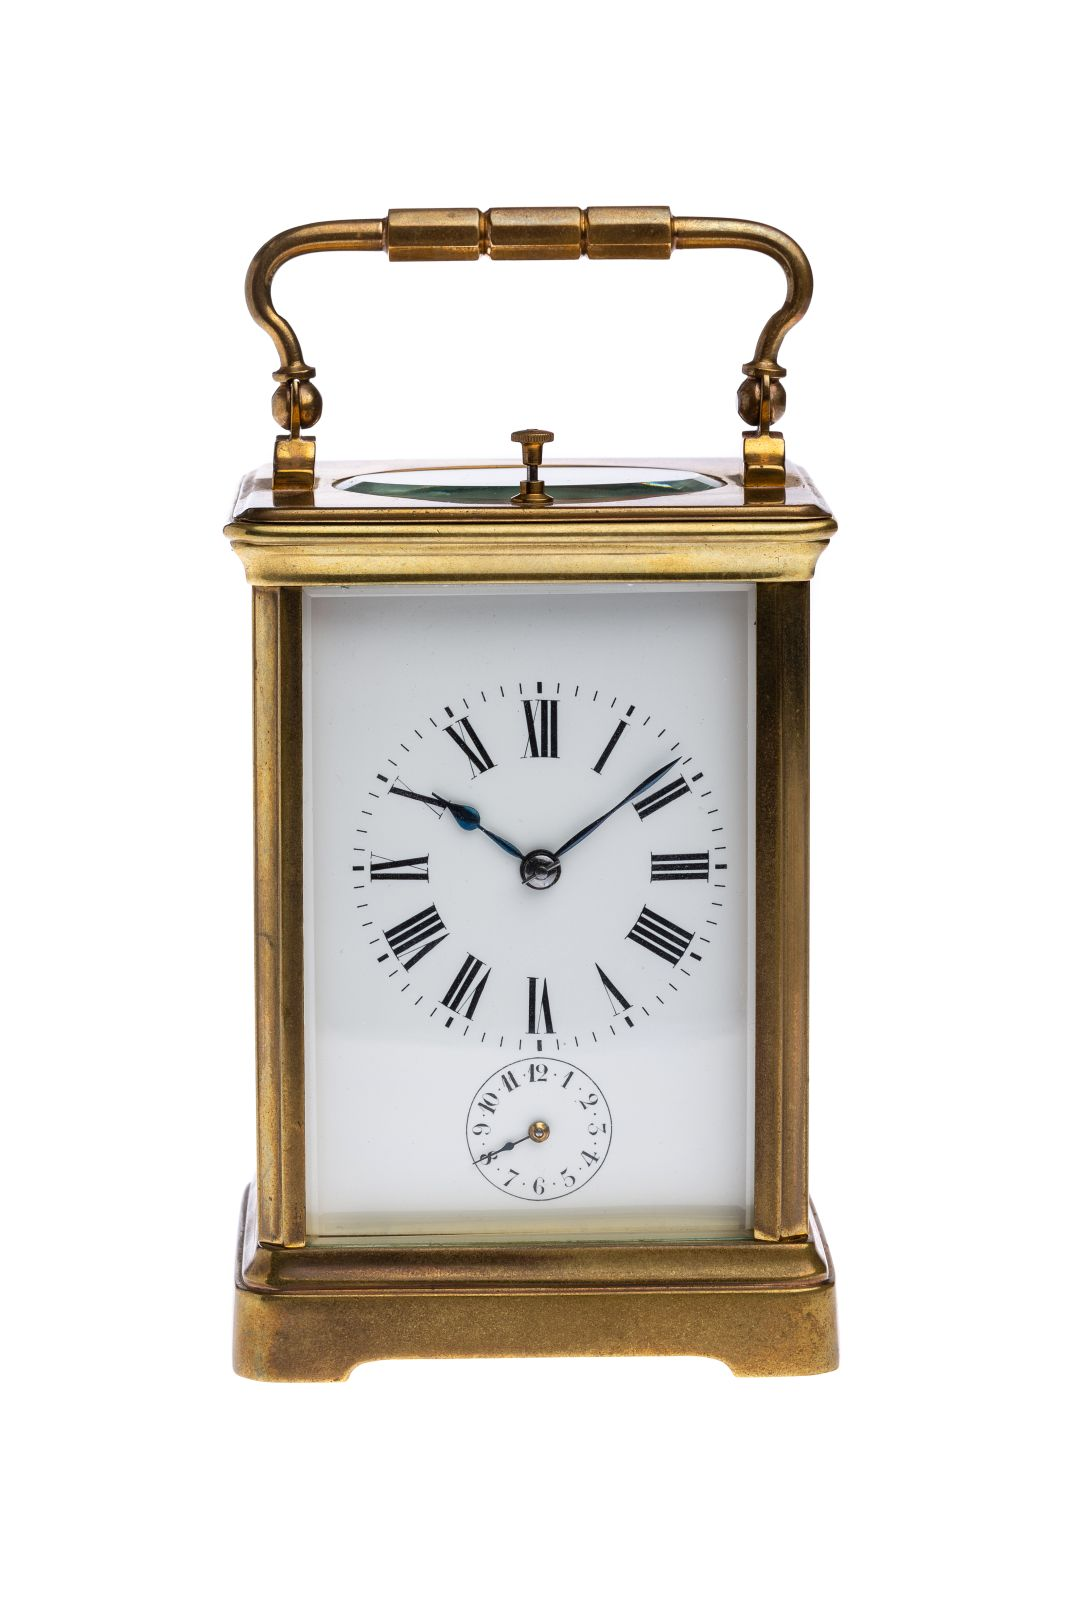 #17 4/4 Travel clock Grand Sonnerie | 4/4 Reiseuhr Grand Sonnerie Image